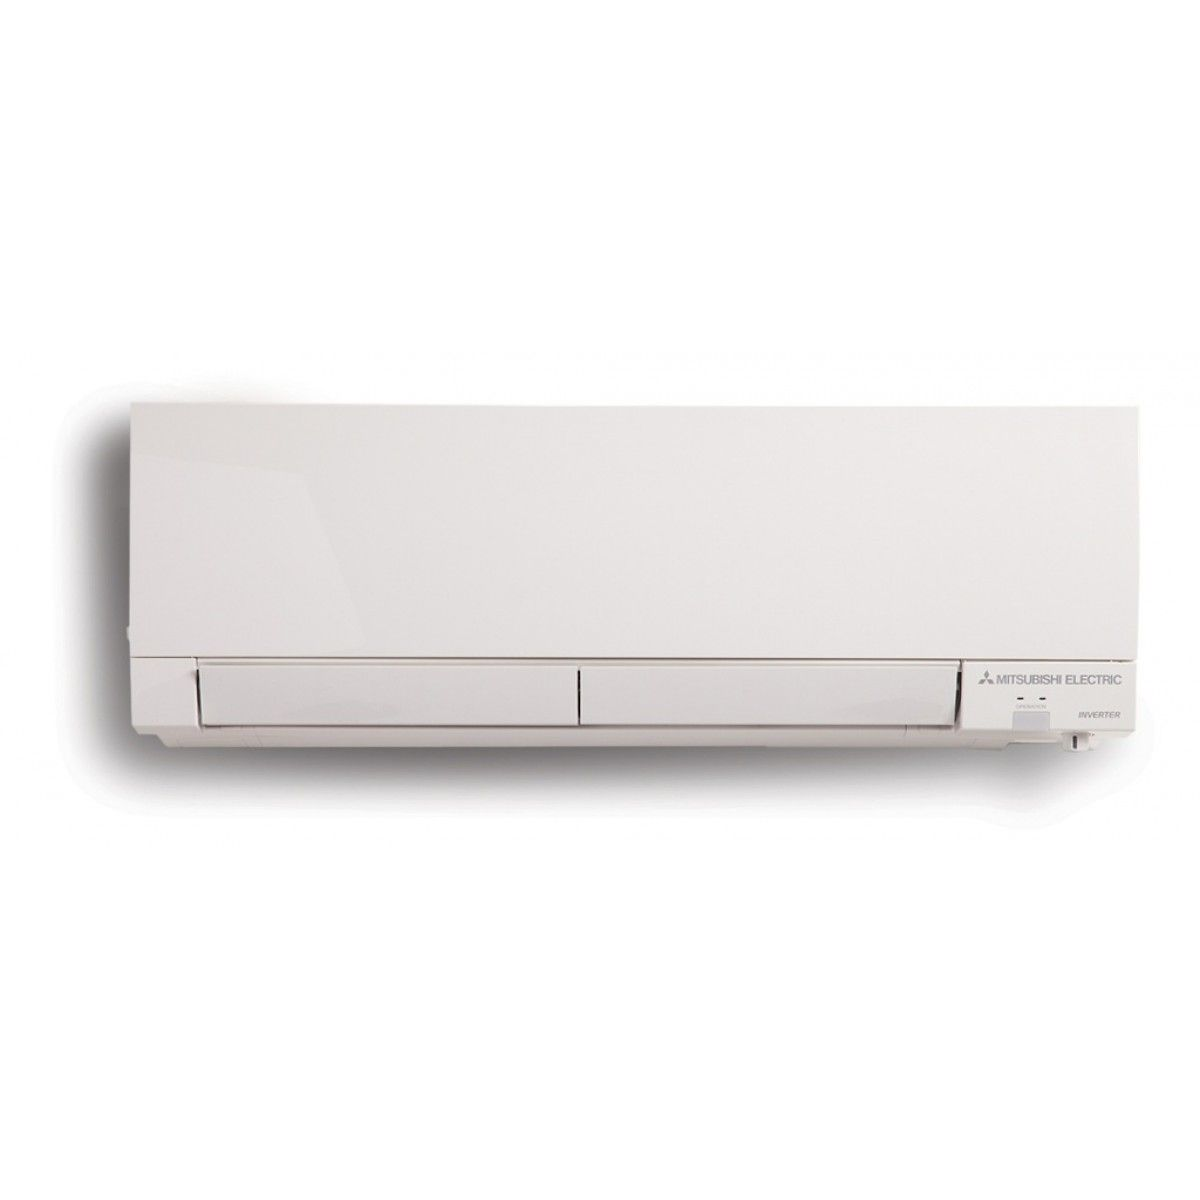 15K BTU MItsubishi MSZFH Hyper Heat Indoor Unit in Ductless AC Components - Ductless AC